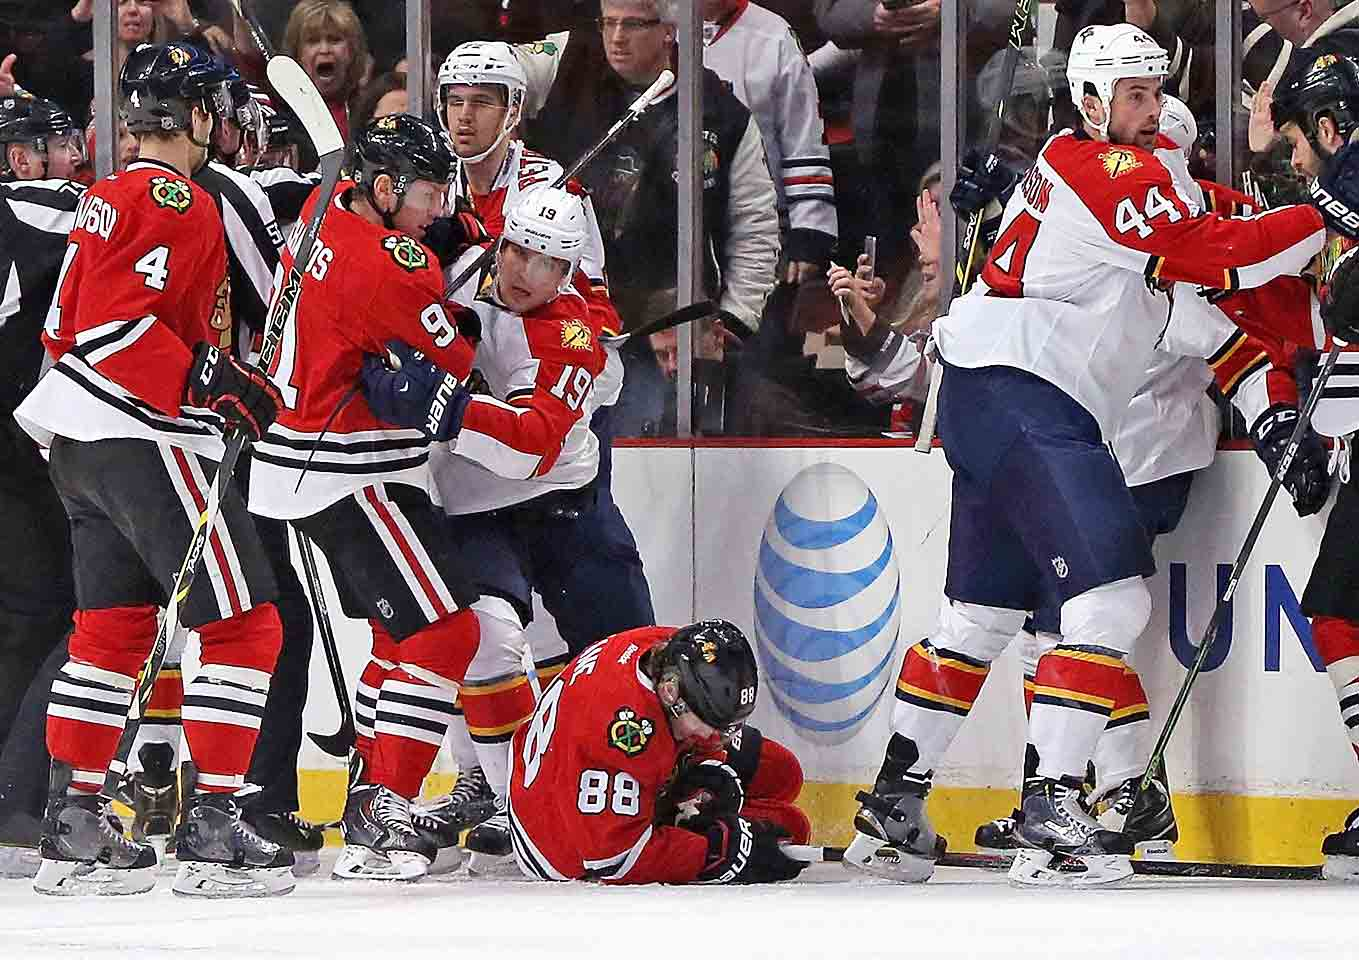 Early in the first period of a 3-2 win against the Panthers, Patrick Kane lands awkwardly against the boards after being crosschecked and leaves the game. Placed on injured reserve with a broken clavicle, he's expected to miss two to three months. The injury ends his regular season, one in which he'd racked up 27 goals and 64 points in 61 games. Of greater concern: The Hawks may have to weather the first two rounds of playoffs without him.